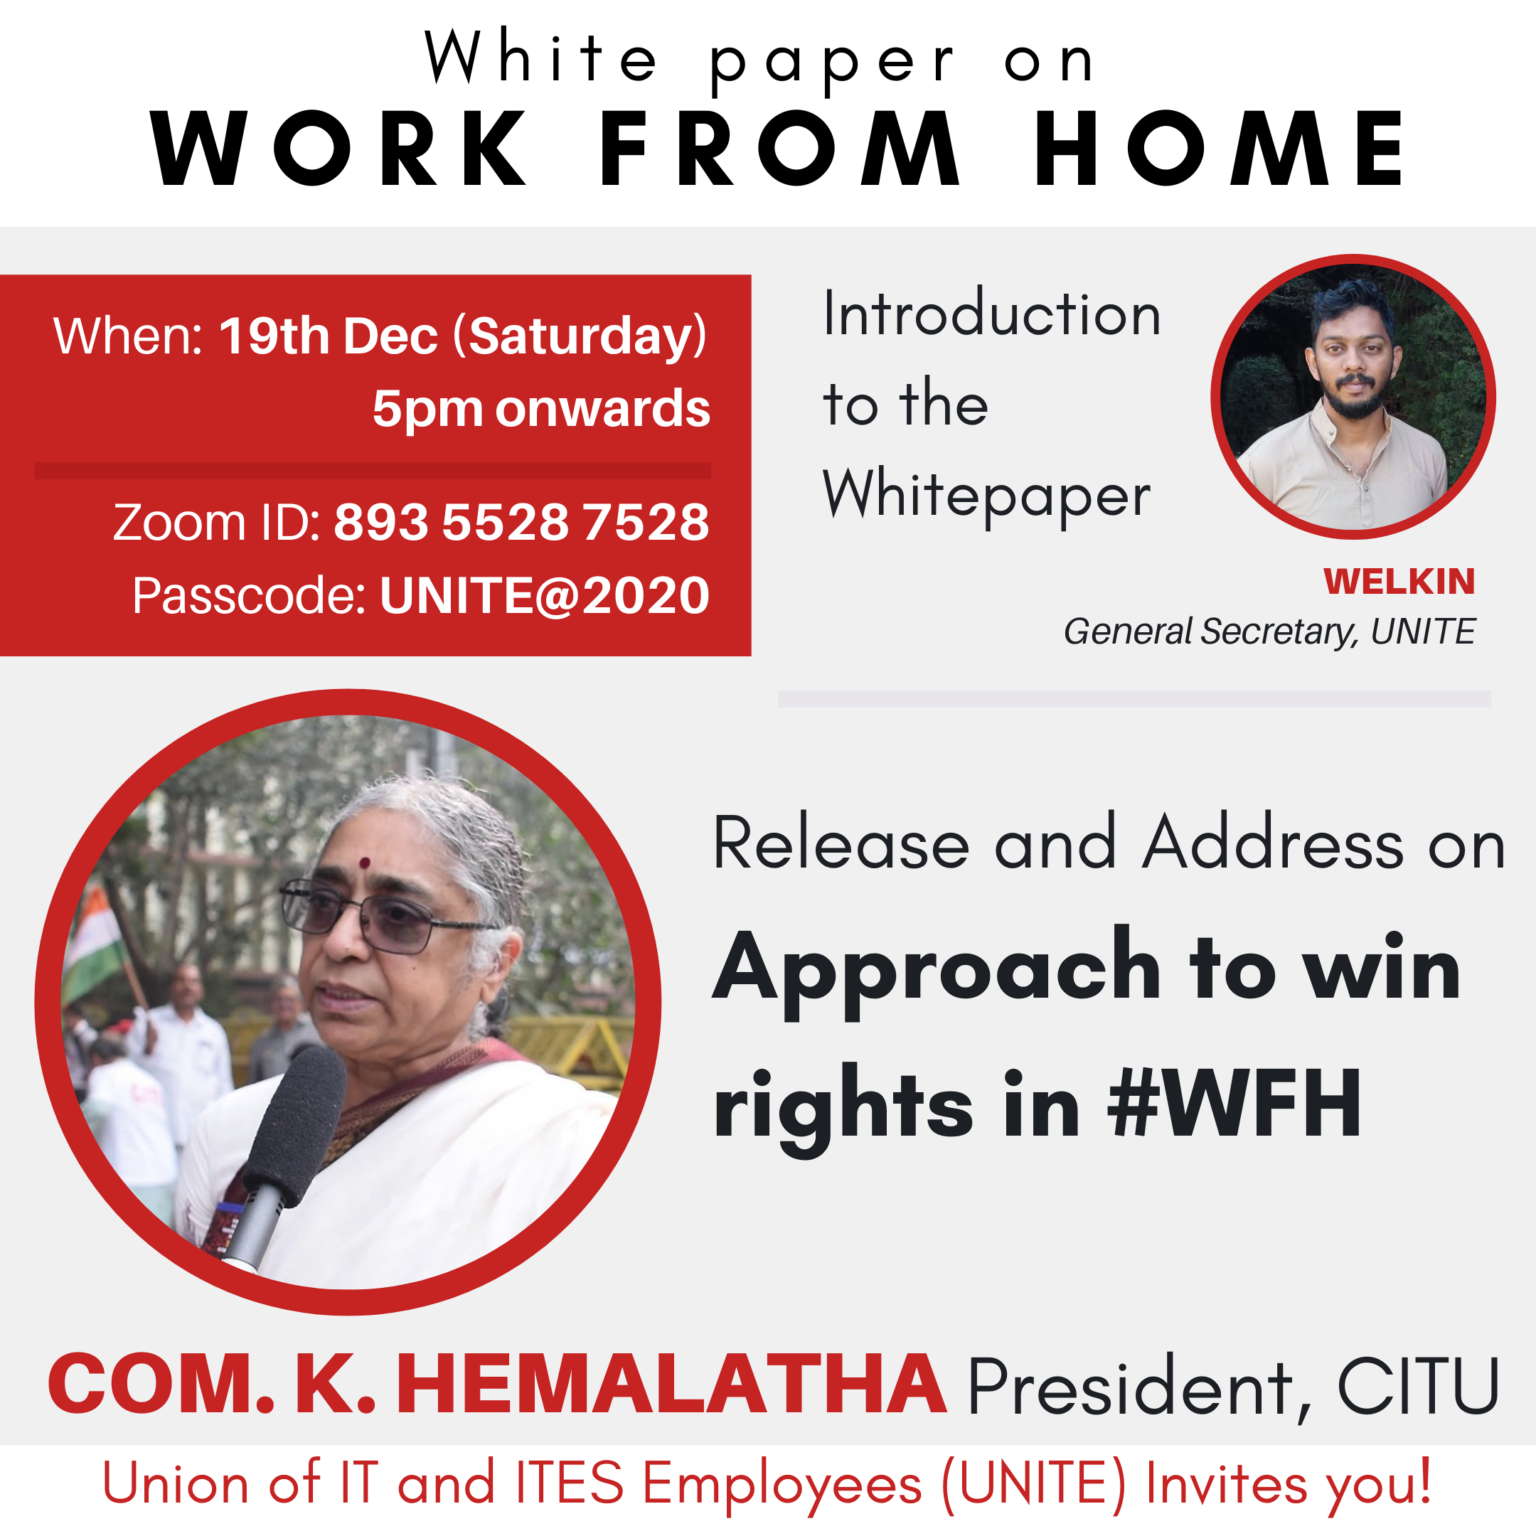 WFH Whitepaper Release